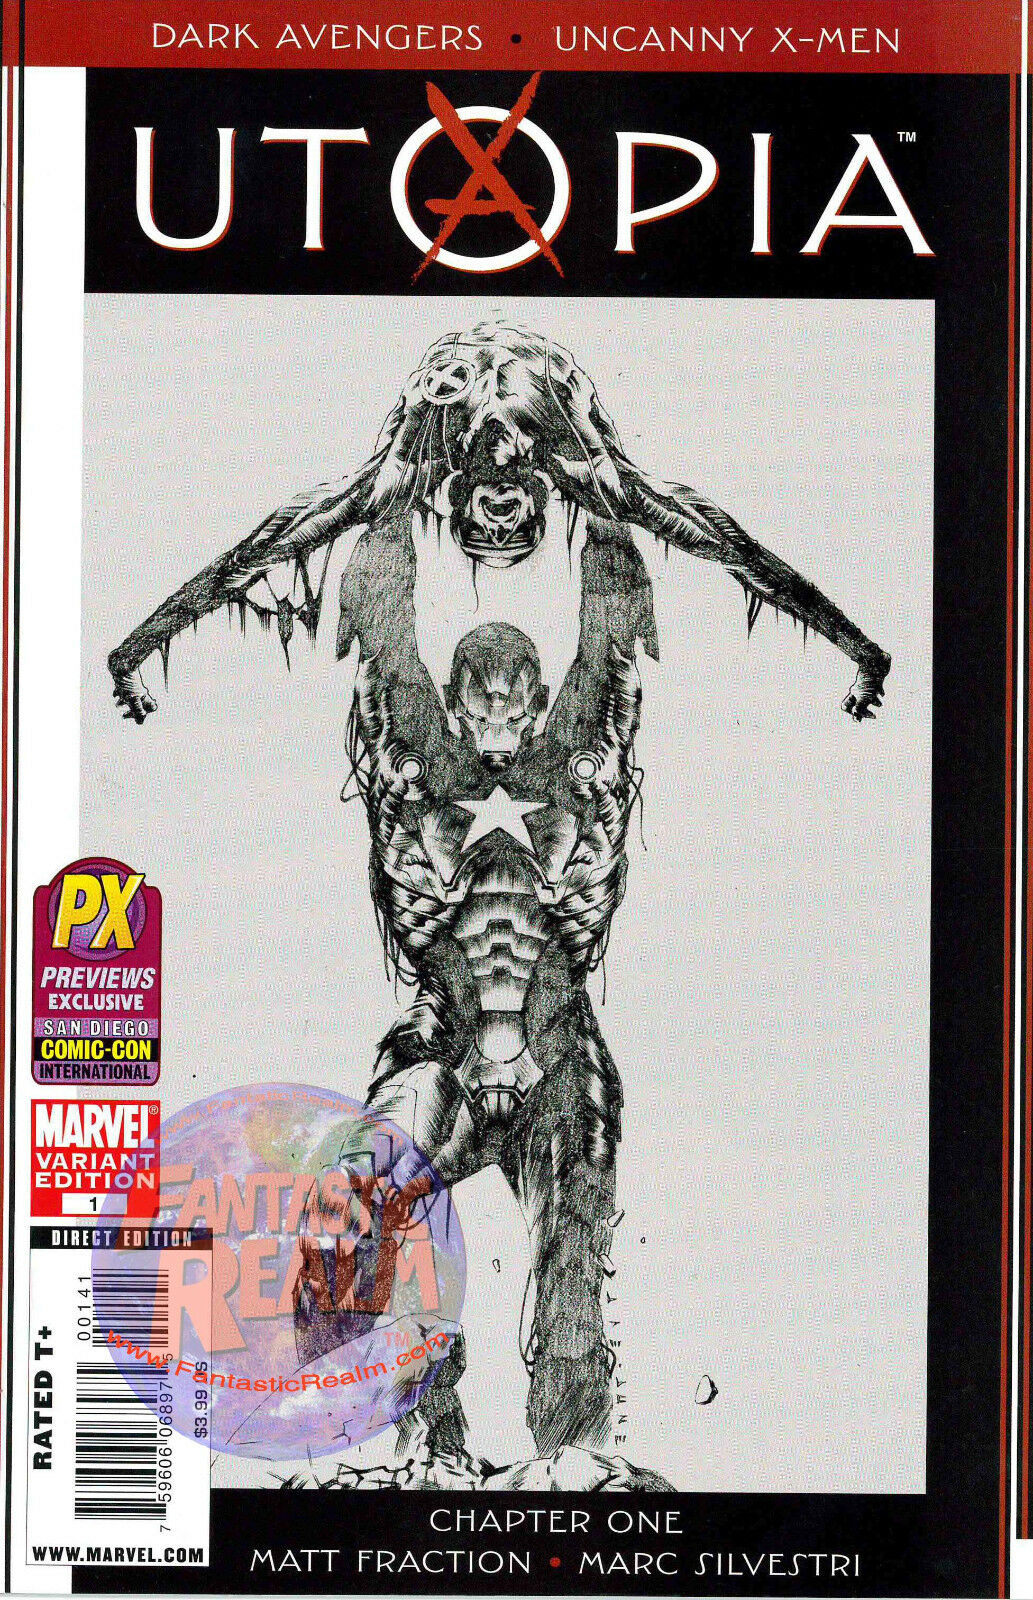 DARK AVENGERS UNCANNY X-MEN UTOPIA #1 LEE VARIANT SAN DIEGO COMIC-CON EXCLUSIVE